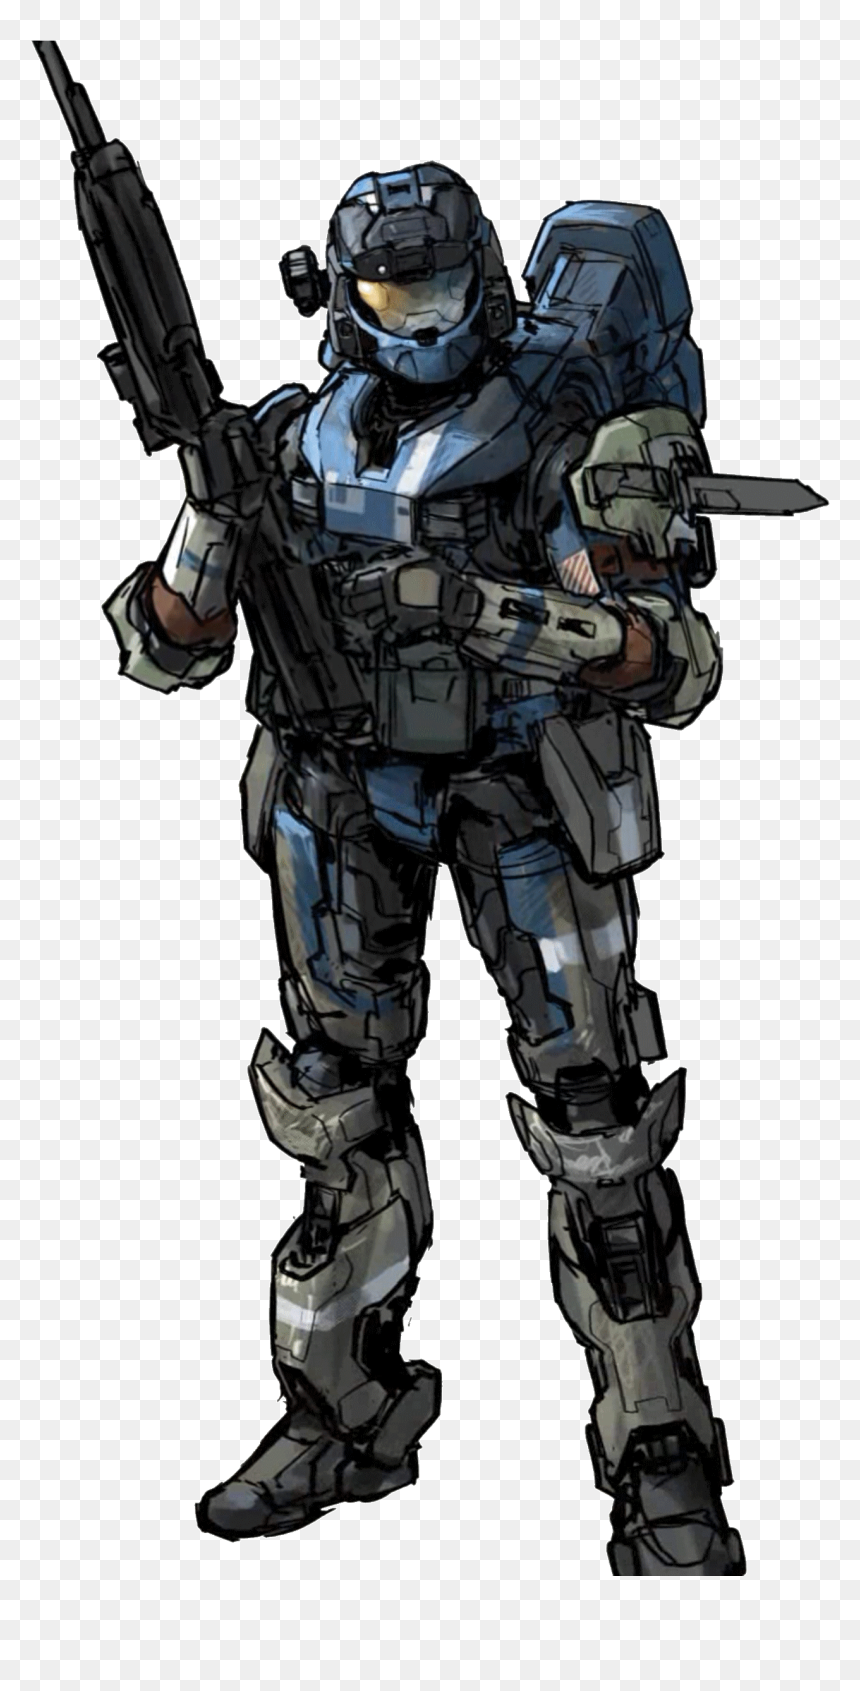 Halo Reach Noble Team Concept Art Hd Png Download Vhv